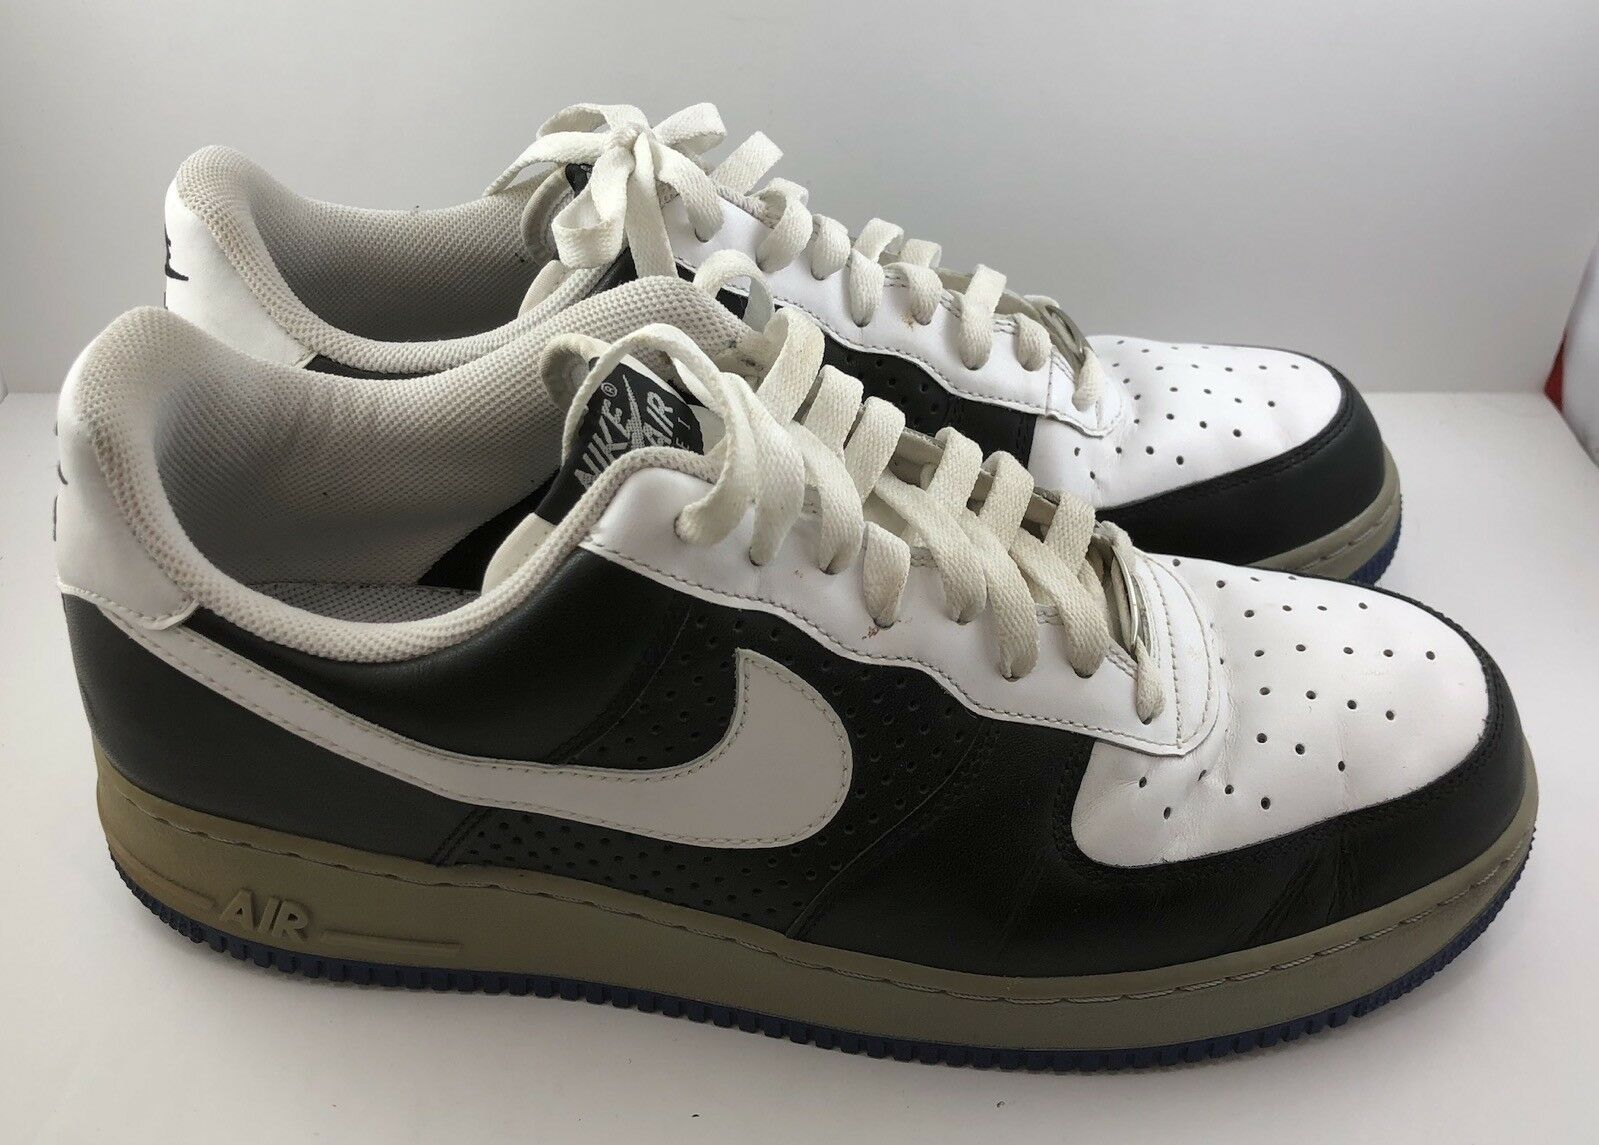 Nike Air Force 1 '07 Low - White Black Grey shoes - 315122-191 Mens Size 13